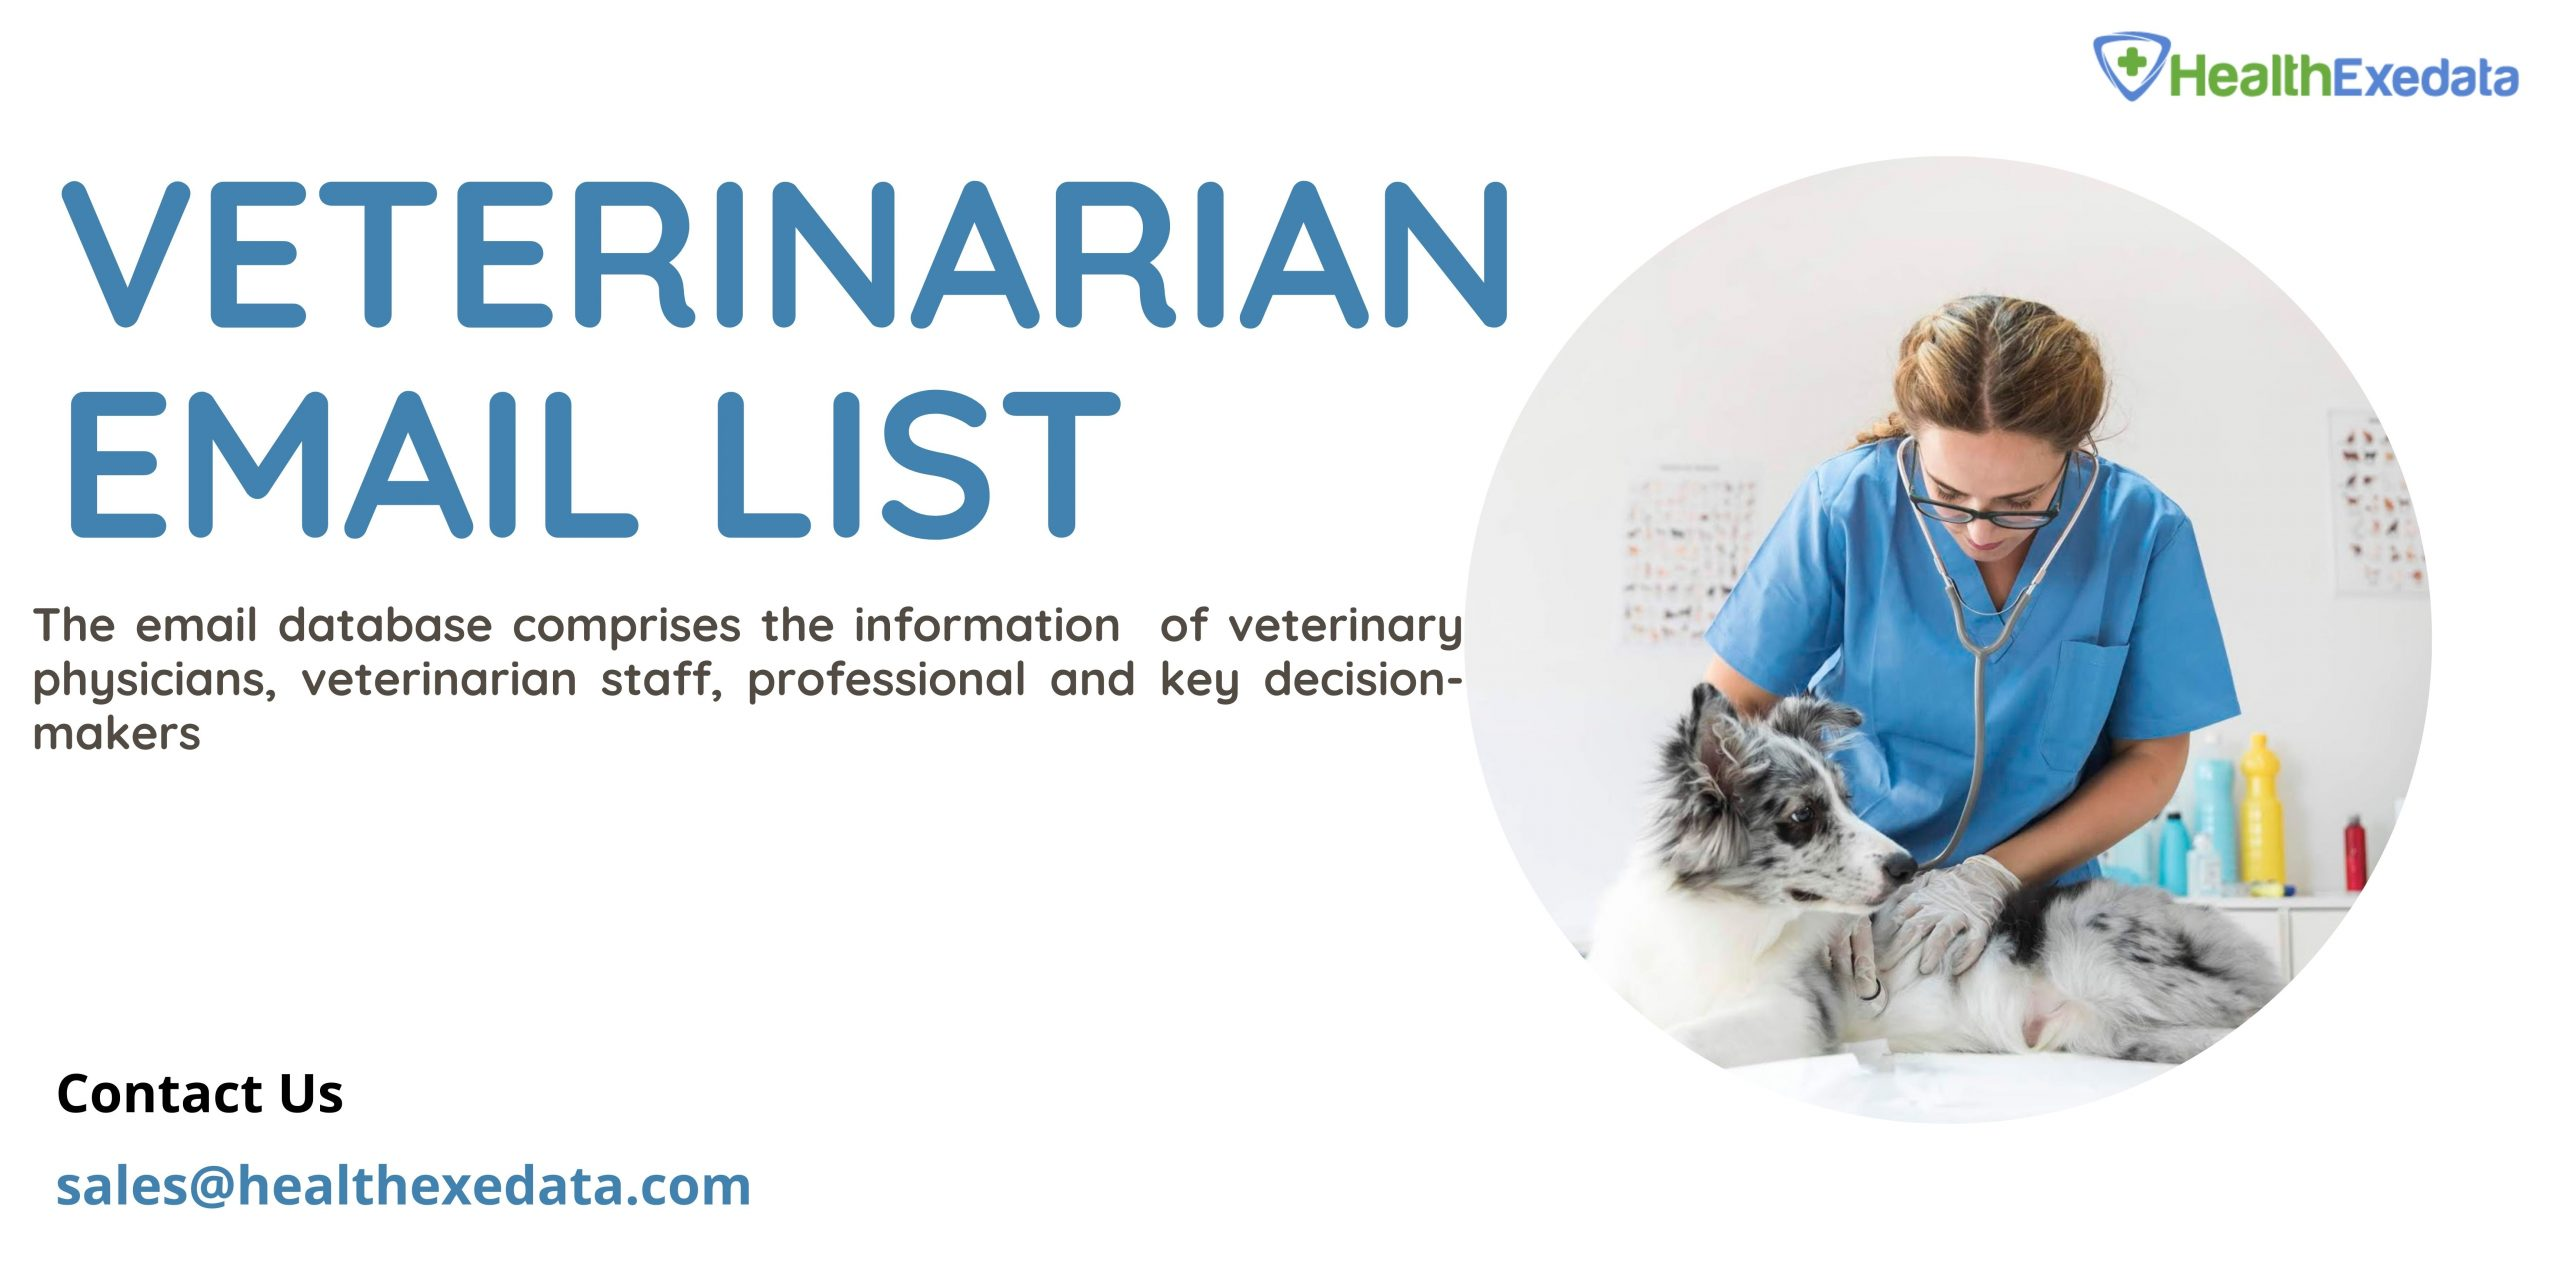 HealthExeData Provides a Solution to Healthcare Marketing Challenges with the Veterinarian Email List